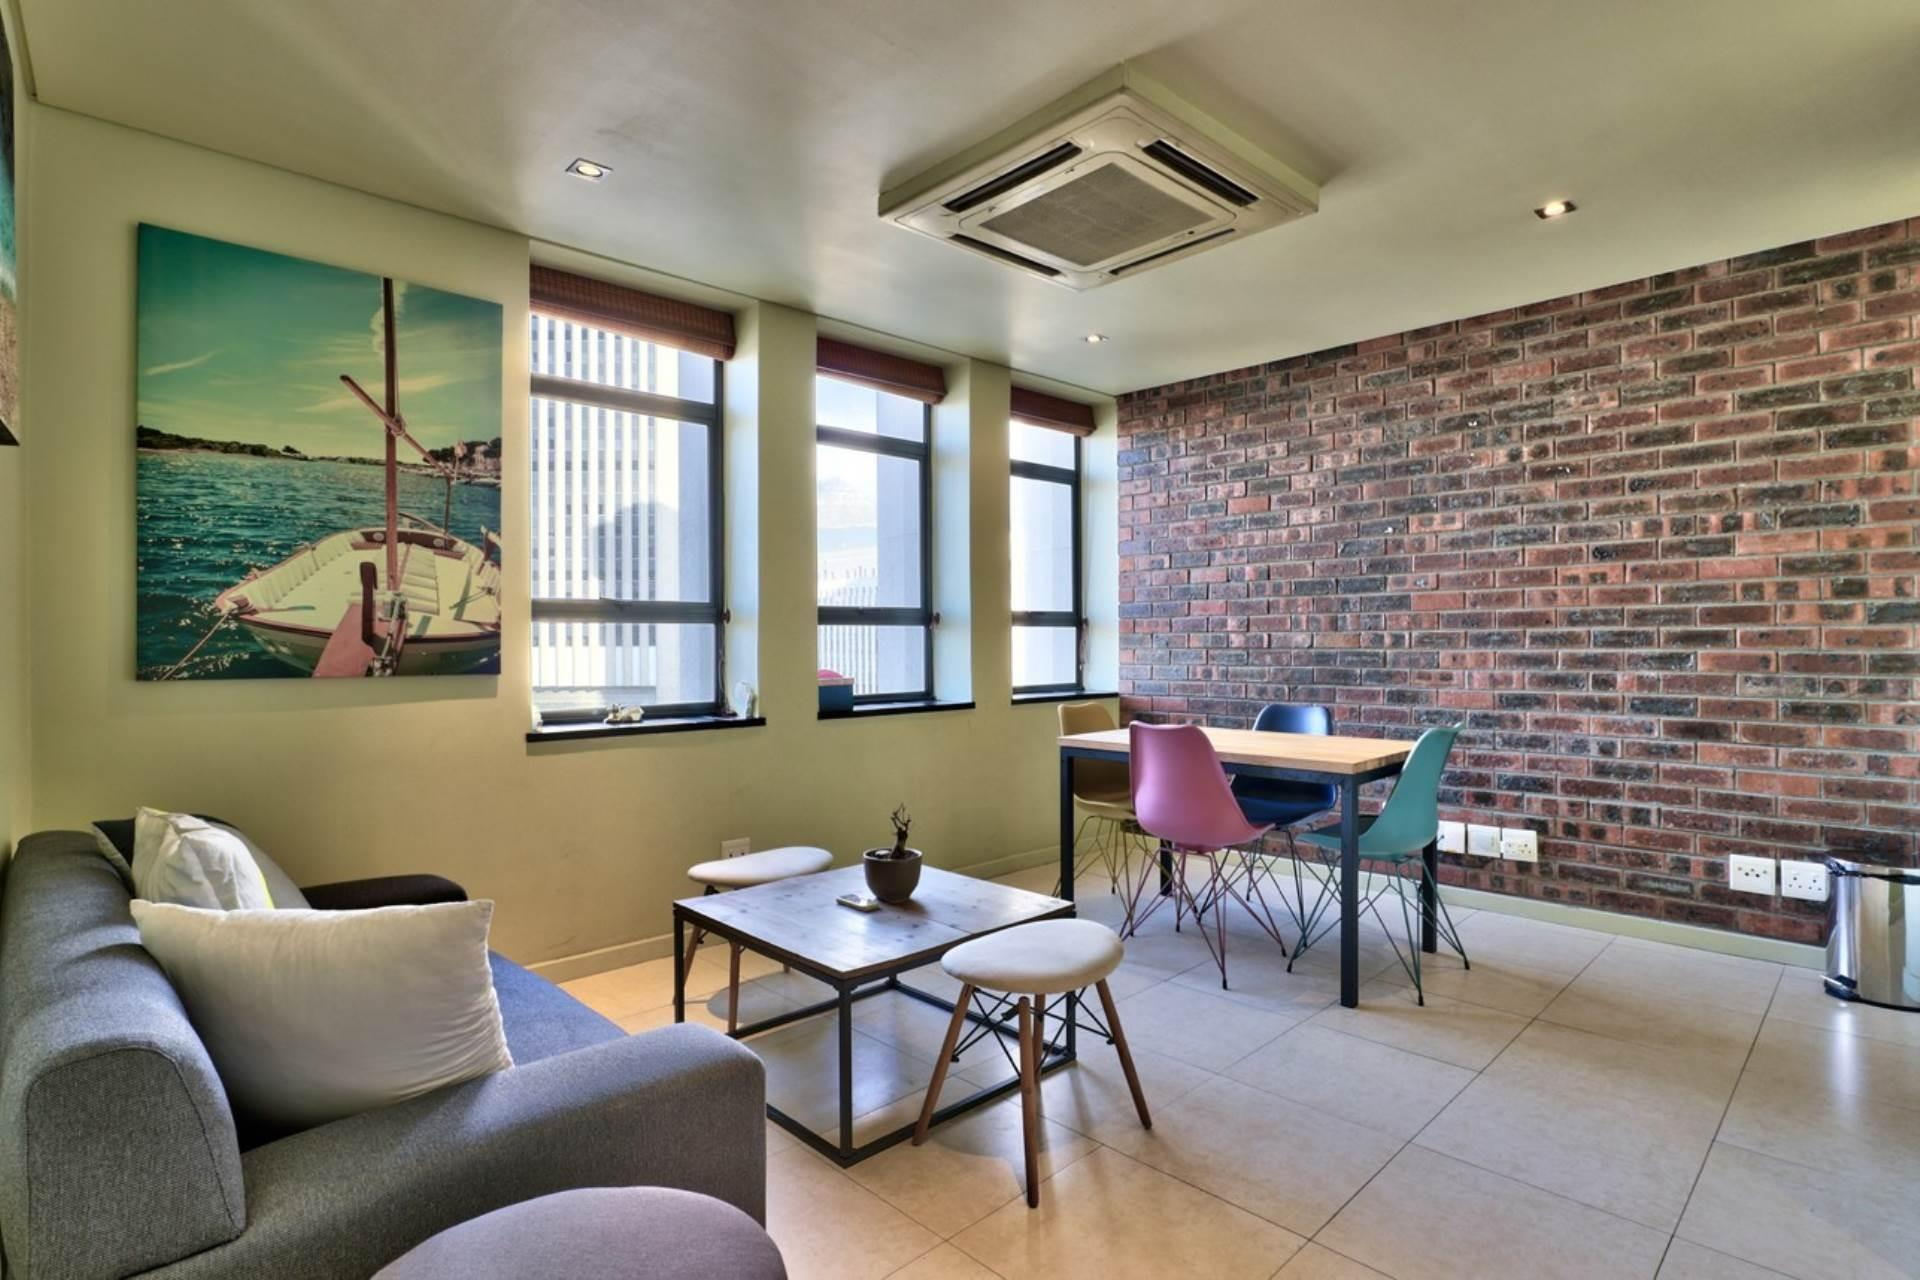 1 Bedroom Apartment For Sale in Cape Town City Centre